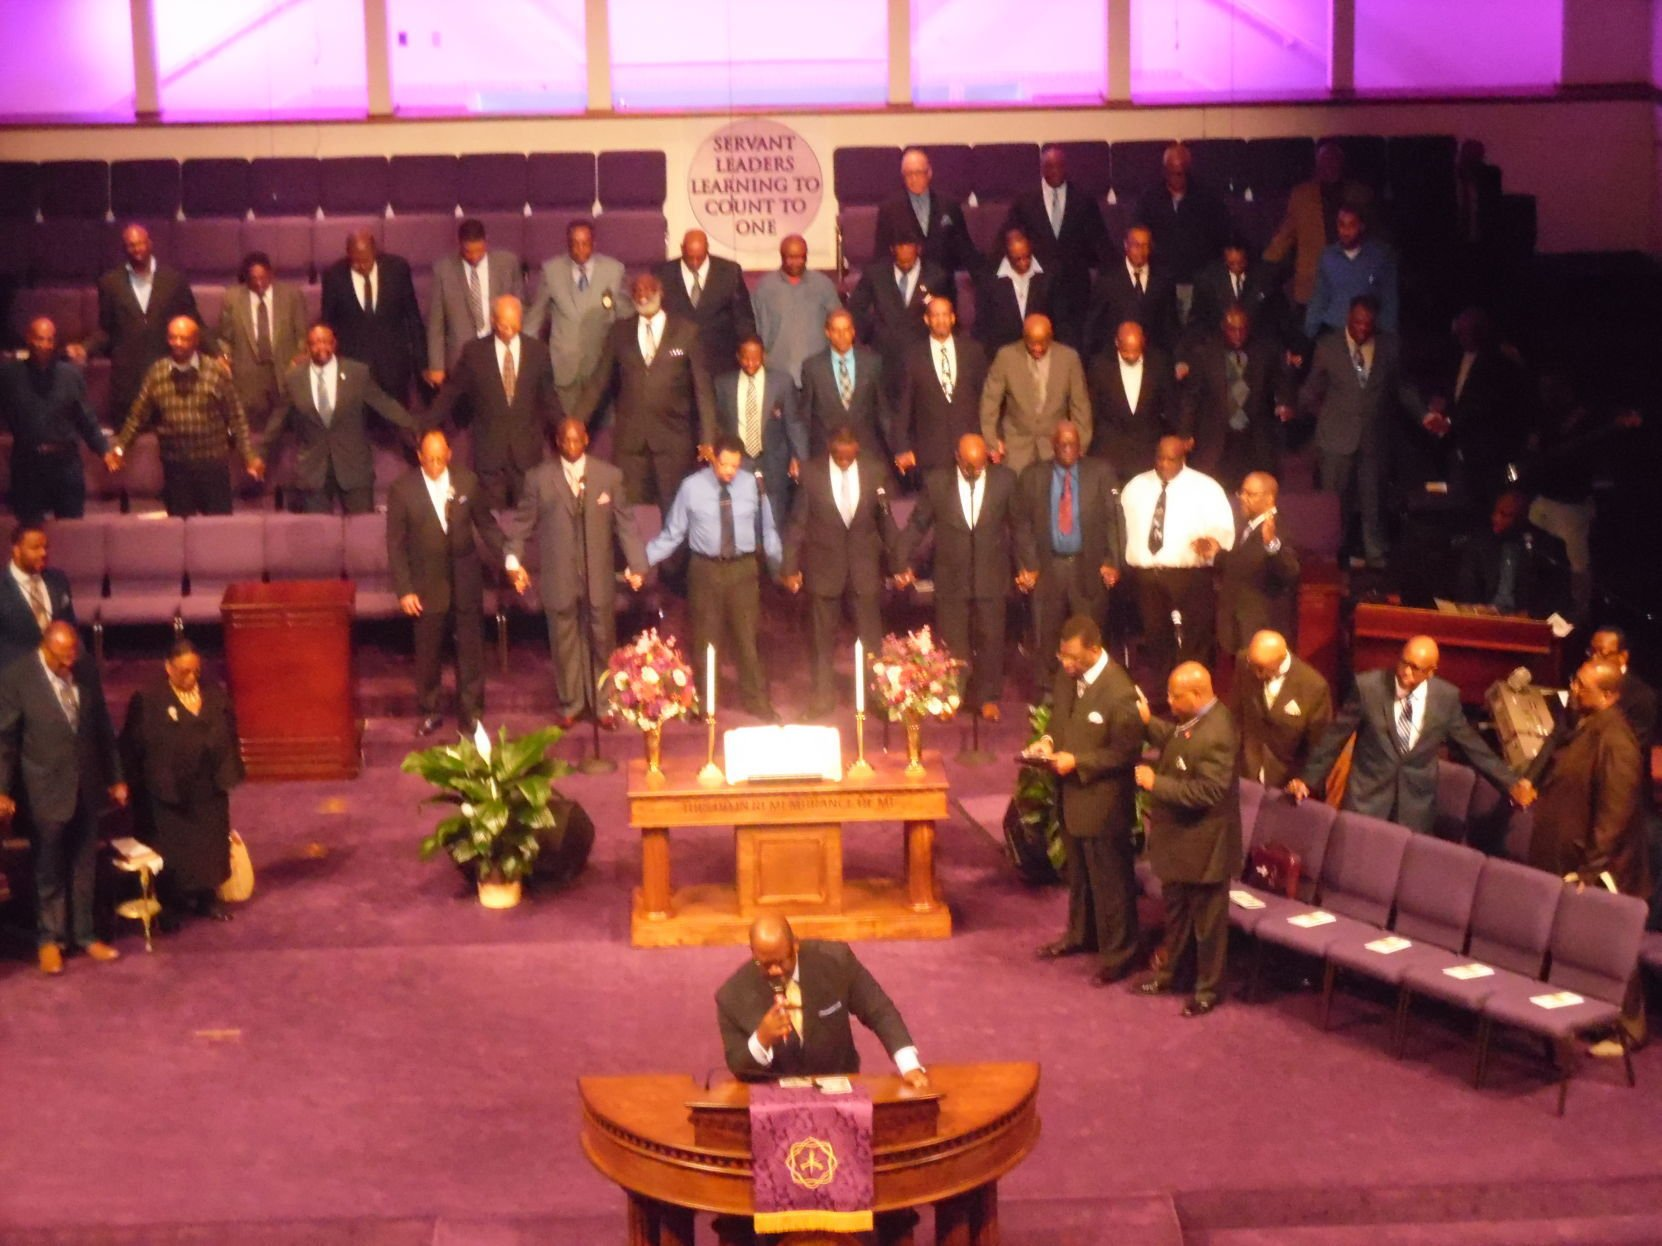 Mt airy cogic online sexual harassment